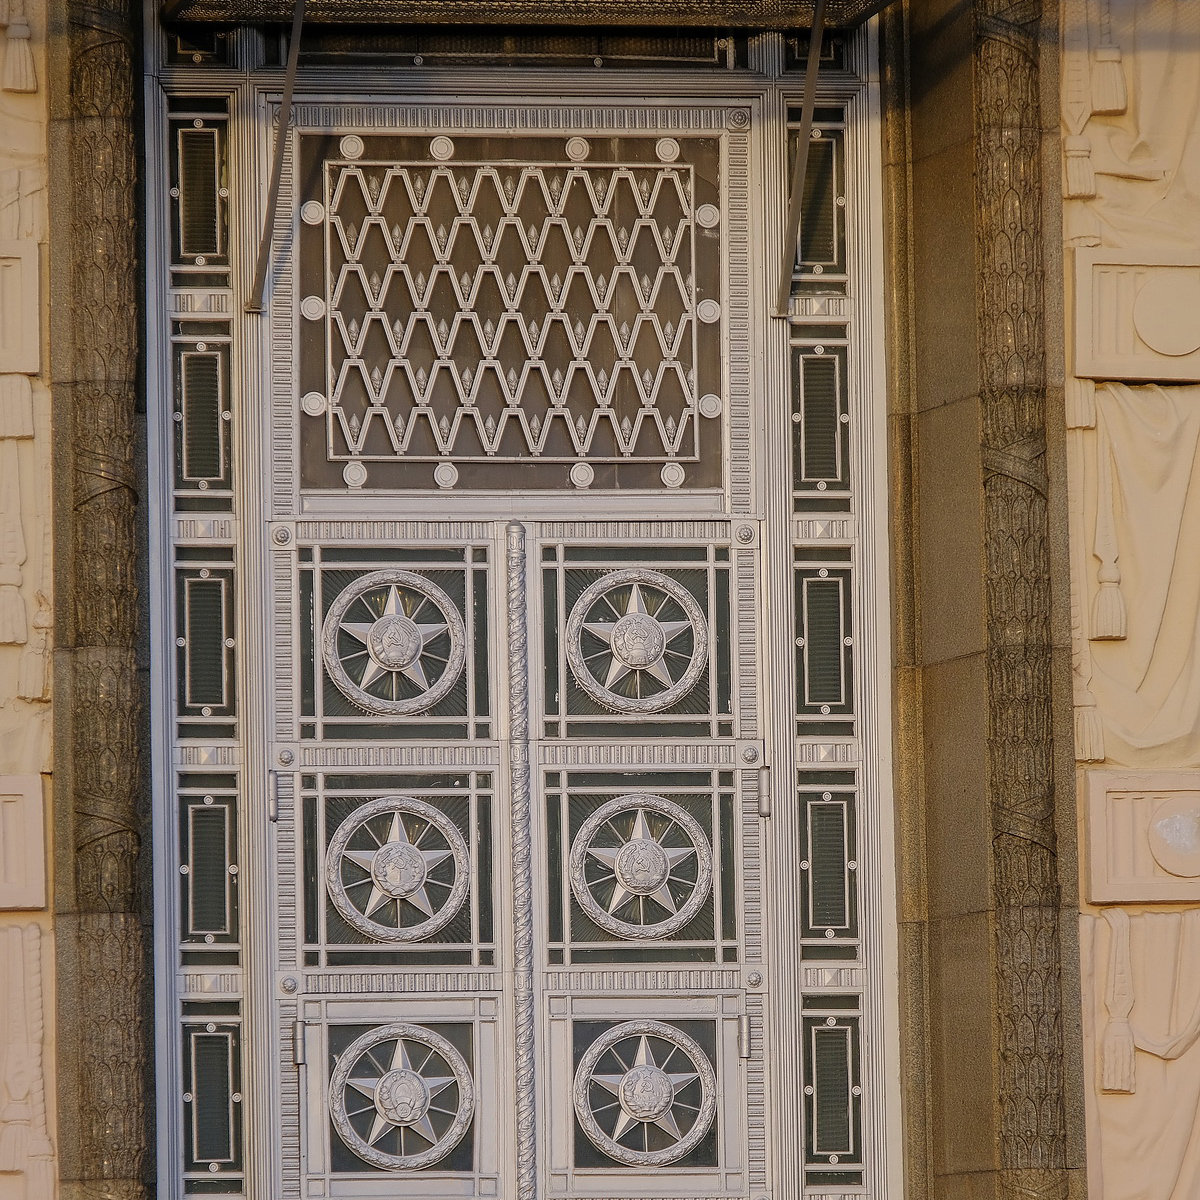 September 1, 2019. The entrance doors of the Ministry of Foreign Affairs of USSR